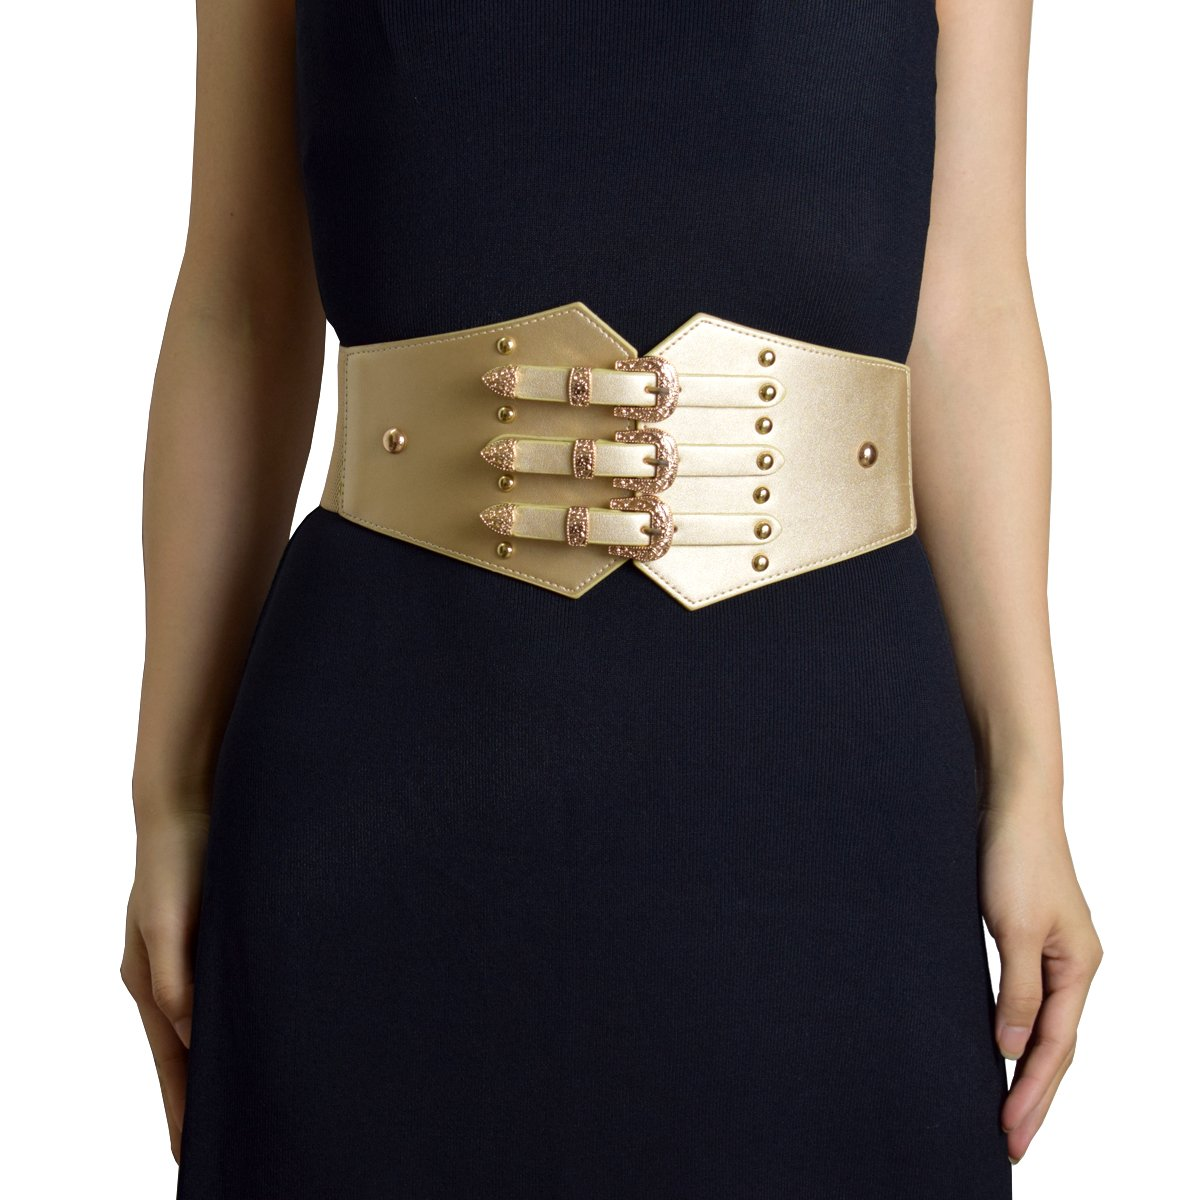 ZIFEIYU Women Vintage Leather Elastic Waist Belt Fashion Wide Belts with gold metal buckle, Multi-Colored to choose (Gold)